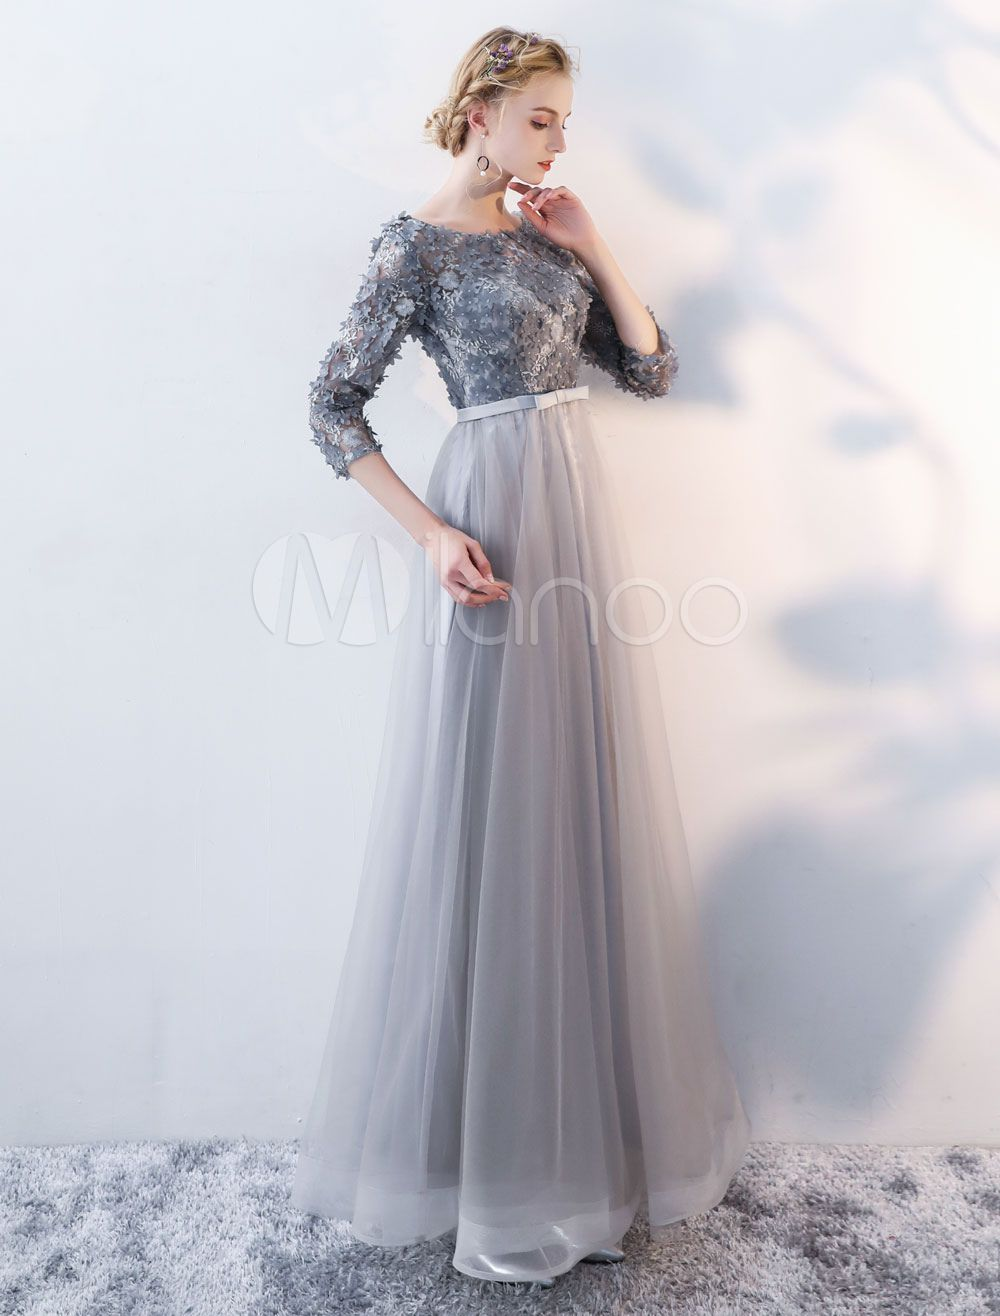 Prom Dresses Long Grey Lace Flowers 3 4 Sleeves Tulle Open Back Bow Sash Floor Length Formal Dress Prom Dresses Long Pleated Wedding Dresses Drop Waist Wedding Dress [ 1316 x 1000 Pixel ]